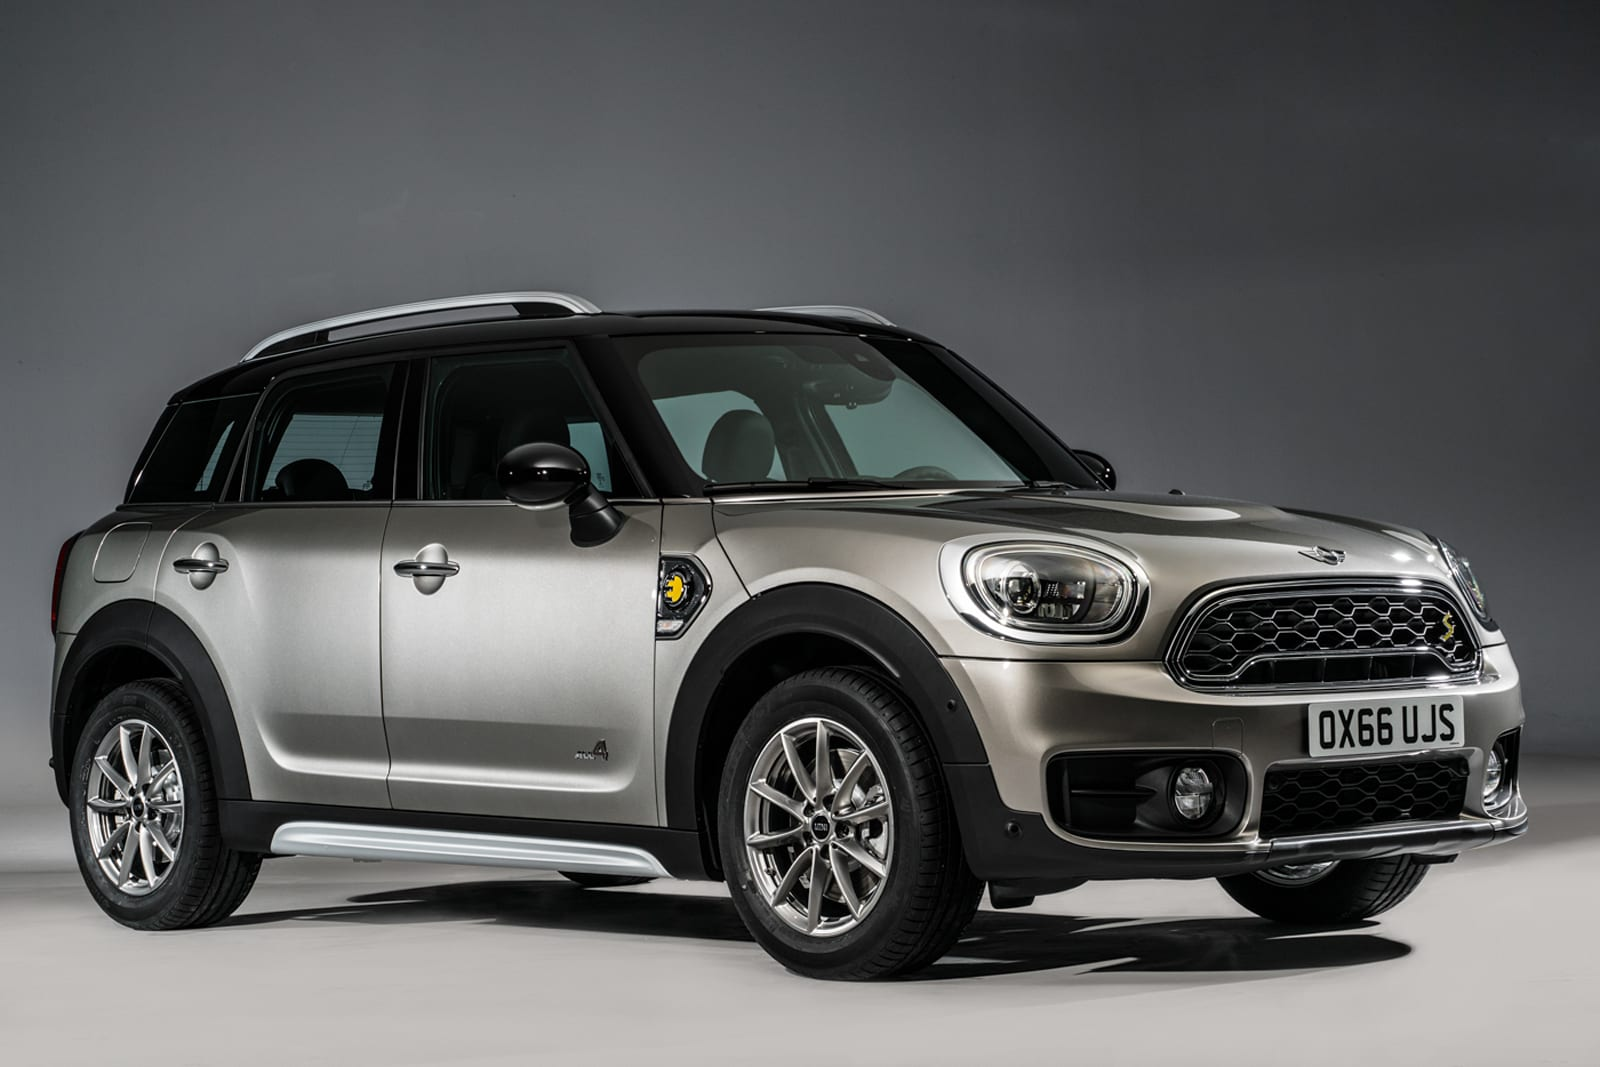 Tiny Carmaker Mini Unveiled Its Hybrid All Wheel Drive Countryman S E At The La Auto Show Today What Intriguing Is That While It An Awd Vehicle